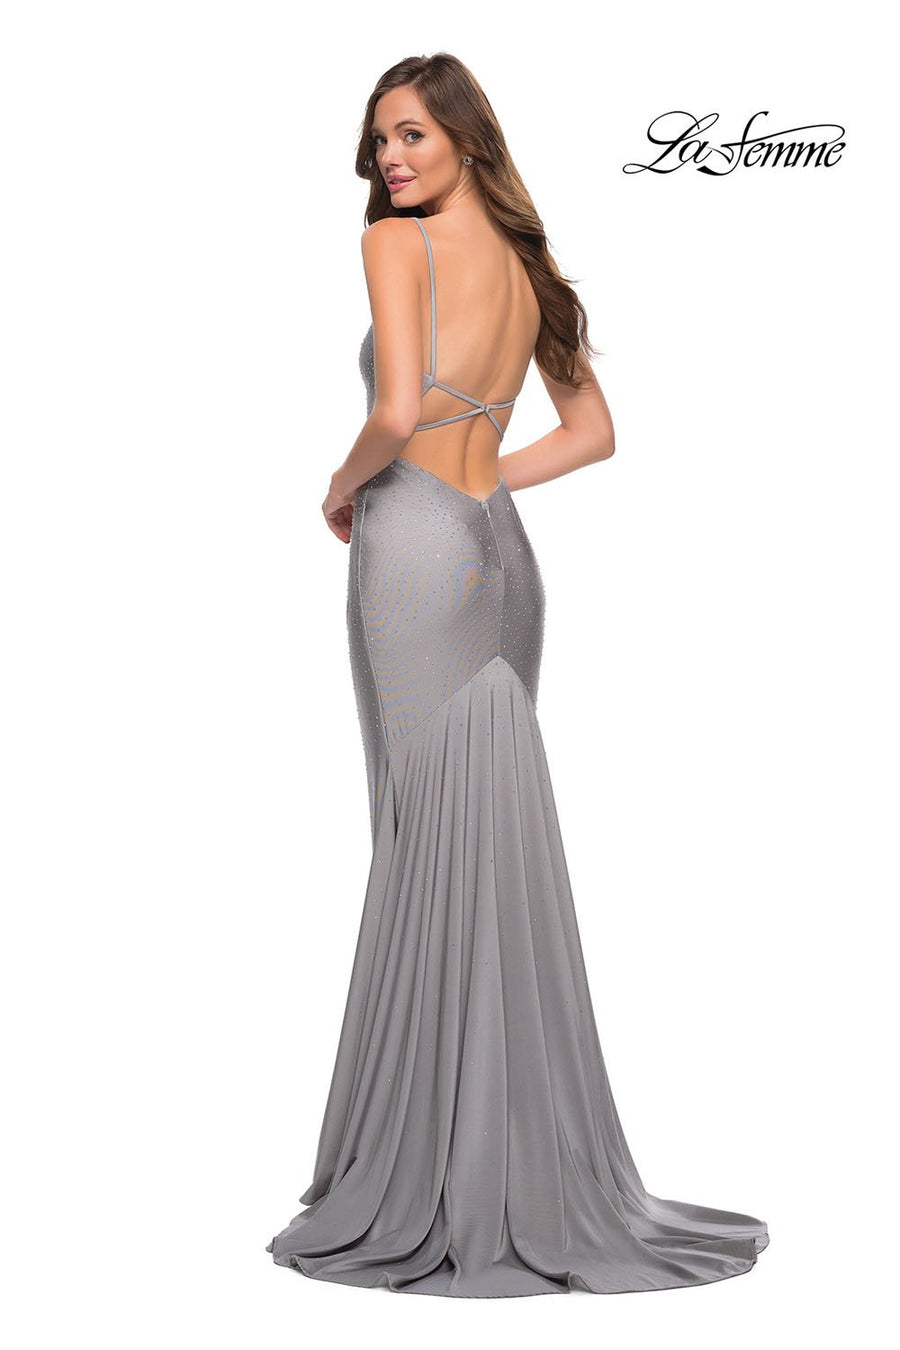 La Femme 29938 prom dress images.  La Femme 29938 is available in these colors: Navy, Silver.